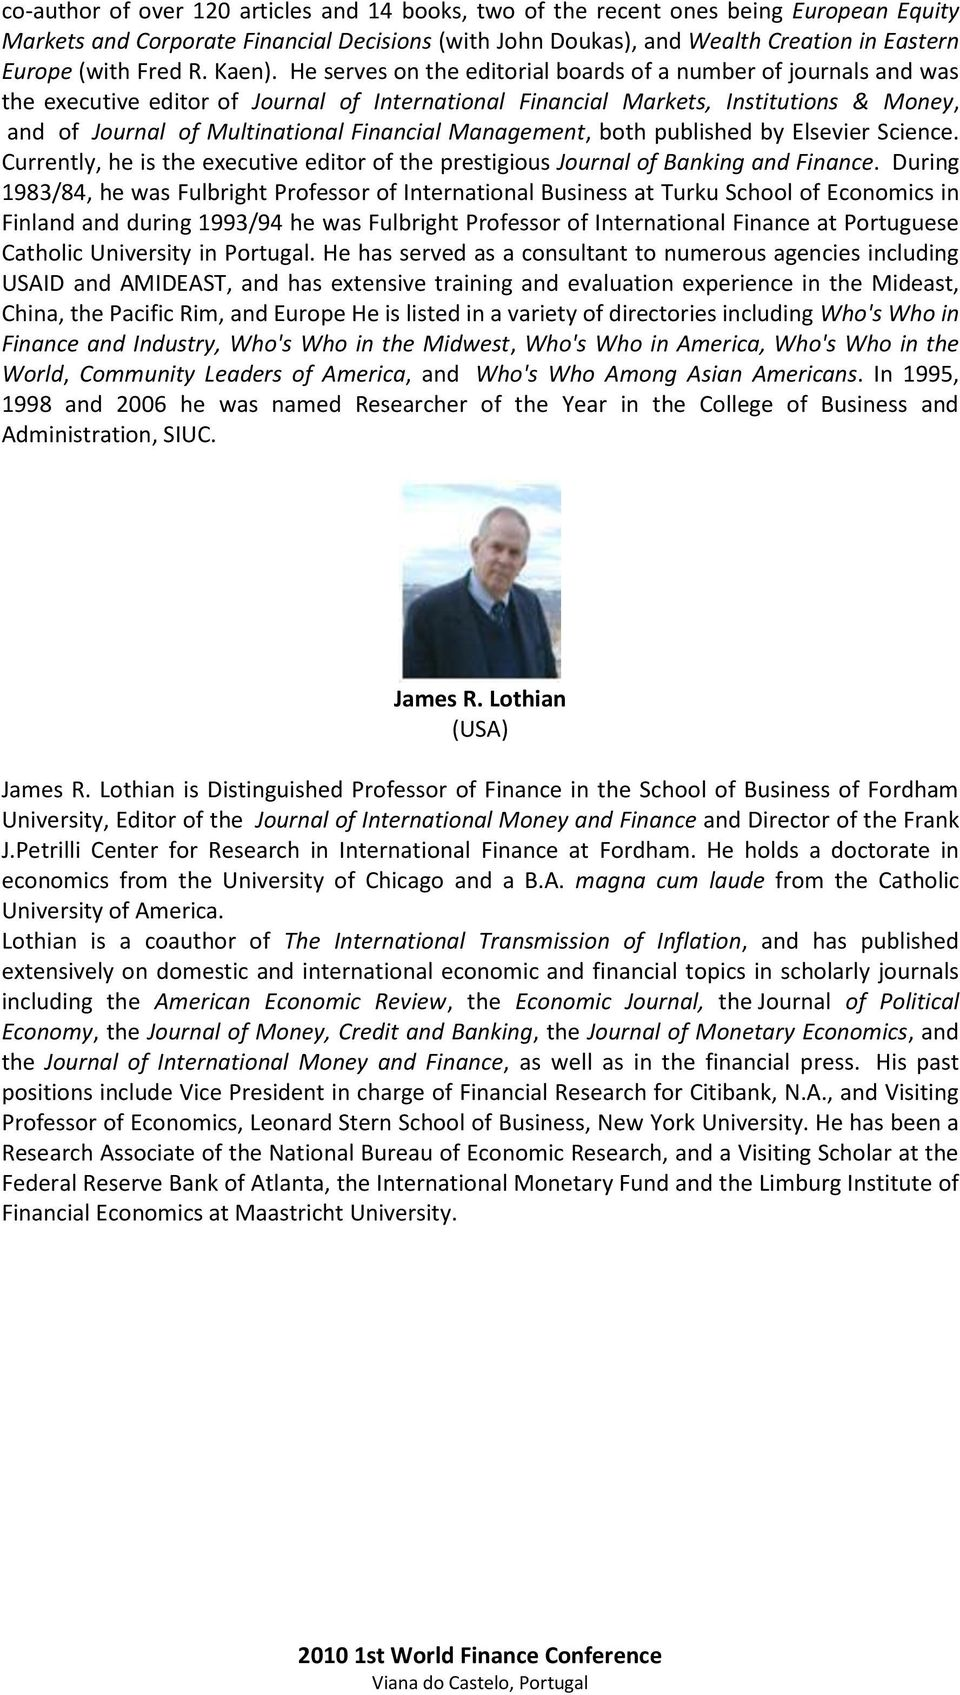 He serves on the editorial boards of a number of journals and was the executive editor of Journal of International Financial Markets, Institutions & Money, and of Journal of Multinational Financial